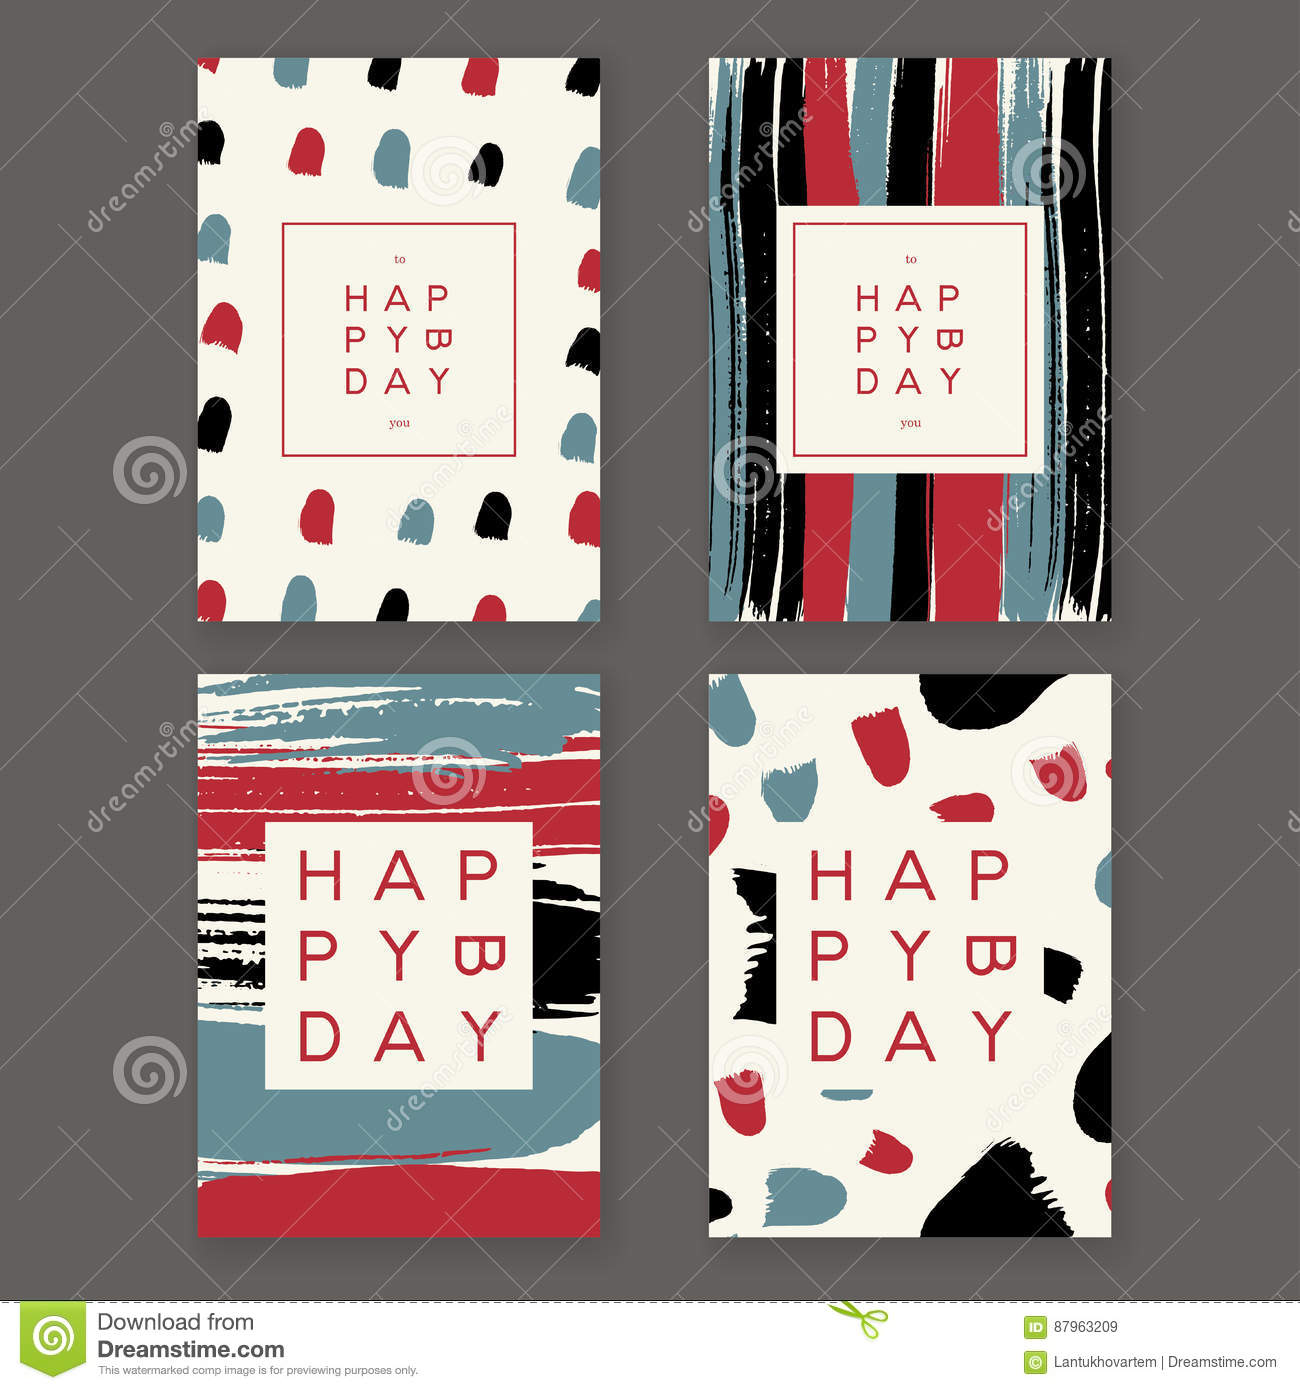 Trendy Birthday Cards Stock Vector Illustration Of Artistic 87963209